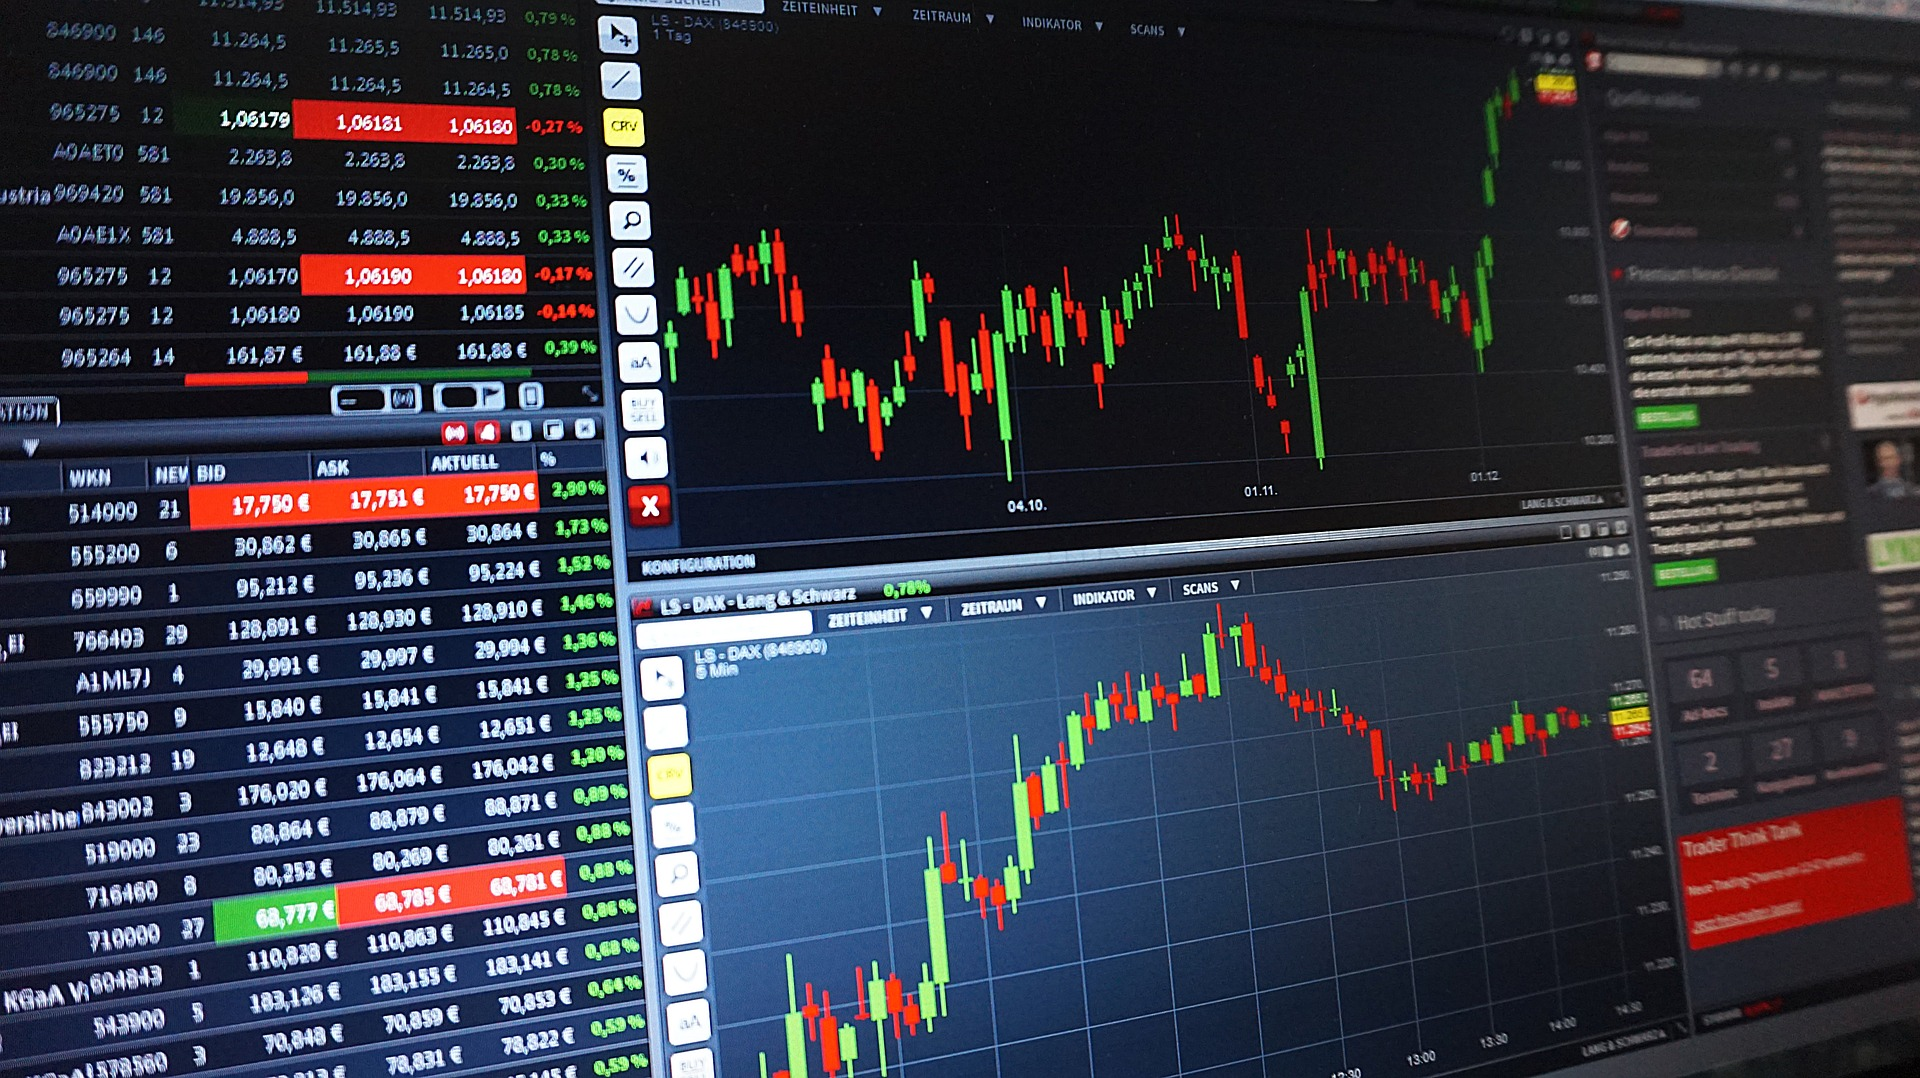 Invest in Funds, ETFs & Investment Trusts for Reliable Passive Income Streams